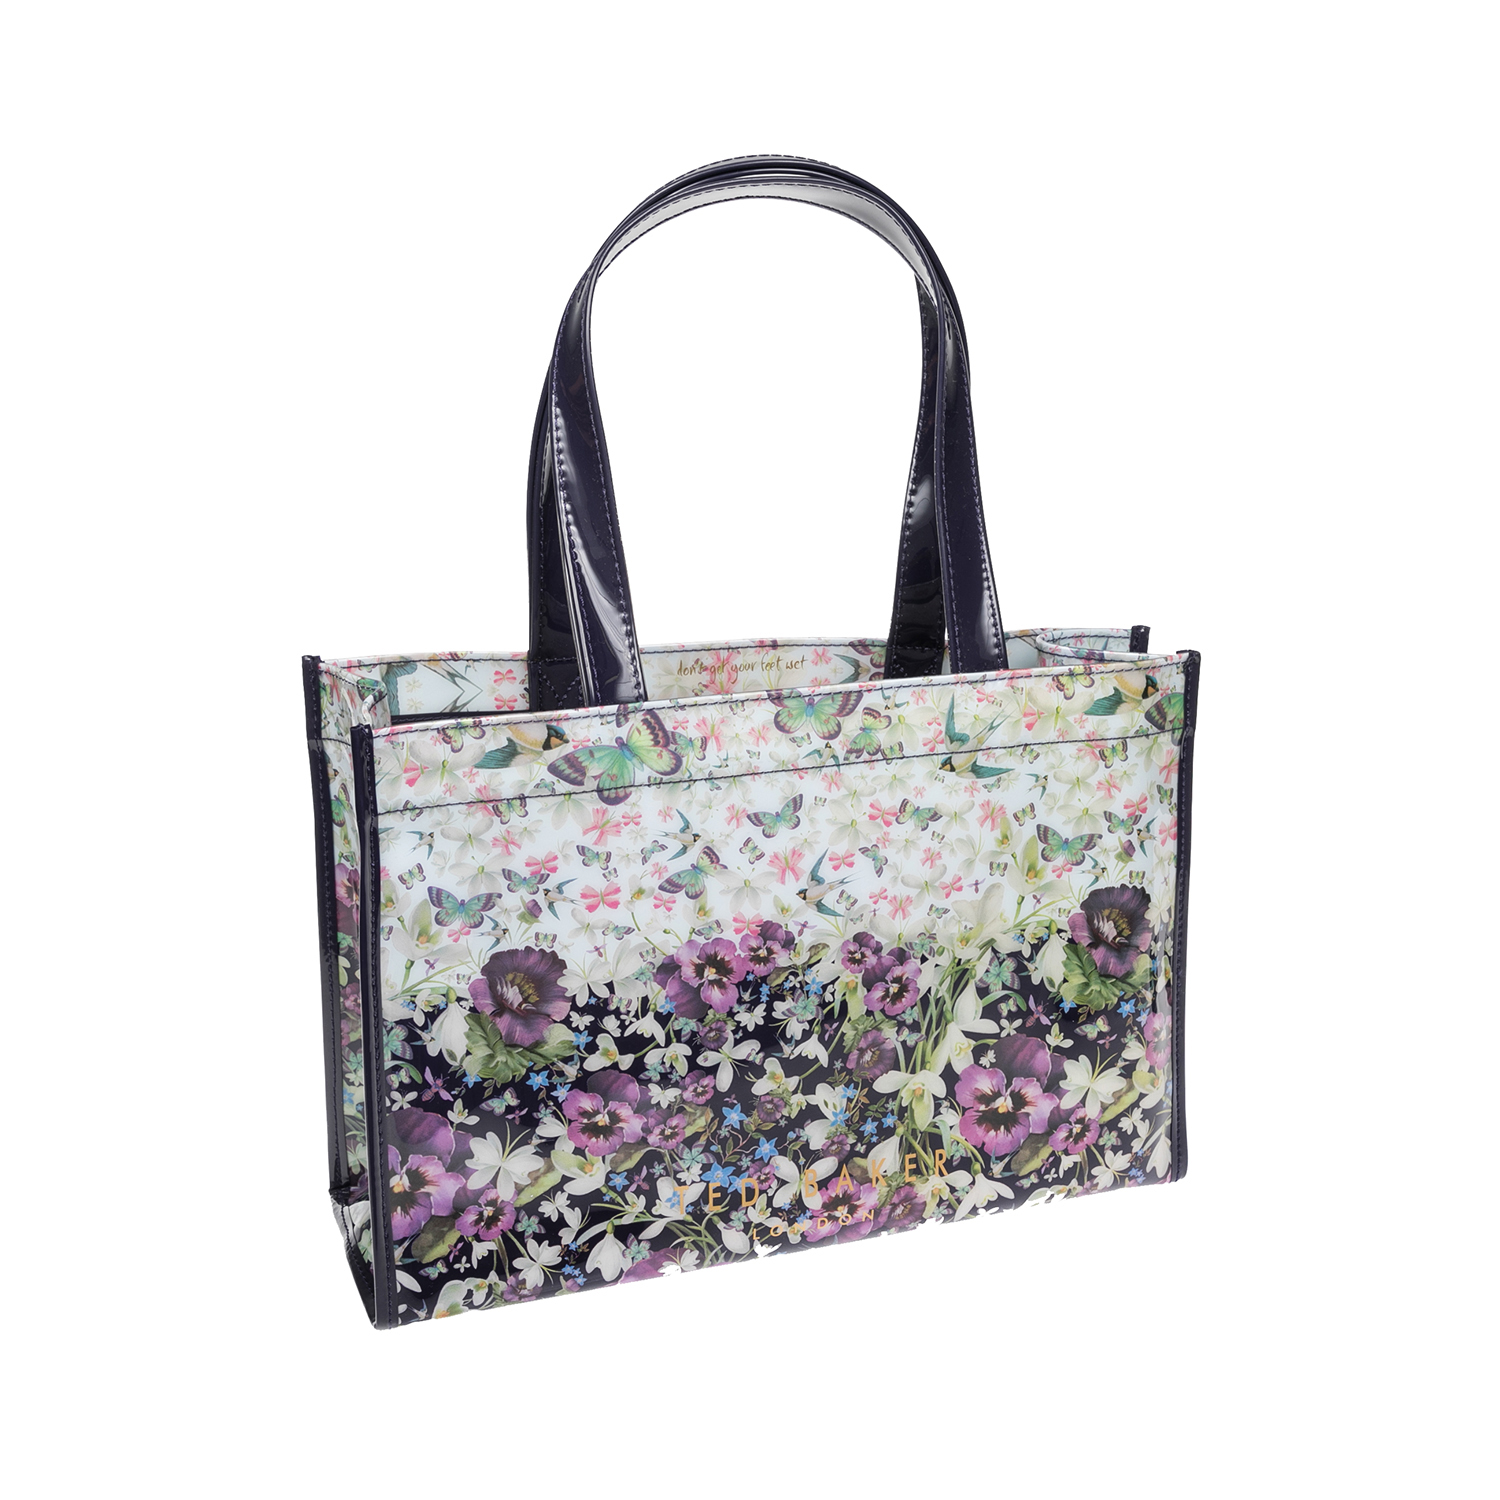 TED BAKER – Γυναικεία τσάντα TED BAKER εμπριμέ 1526948.0-0013